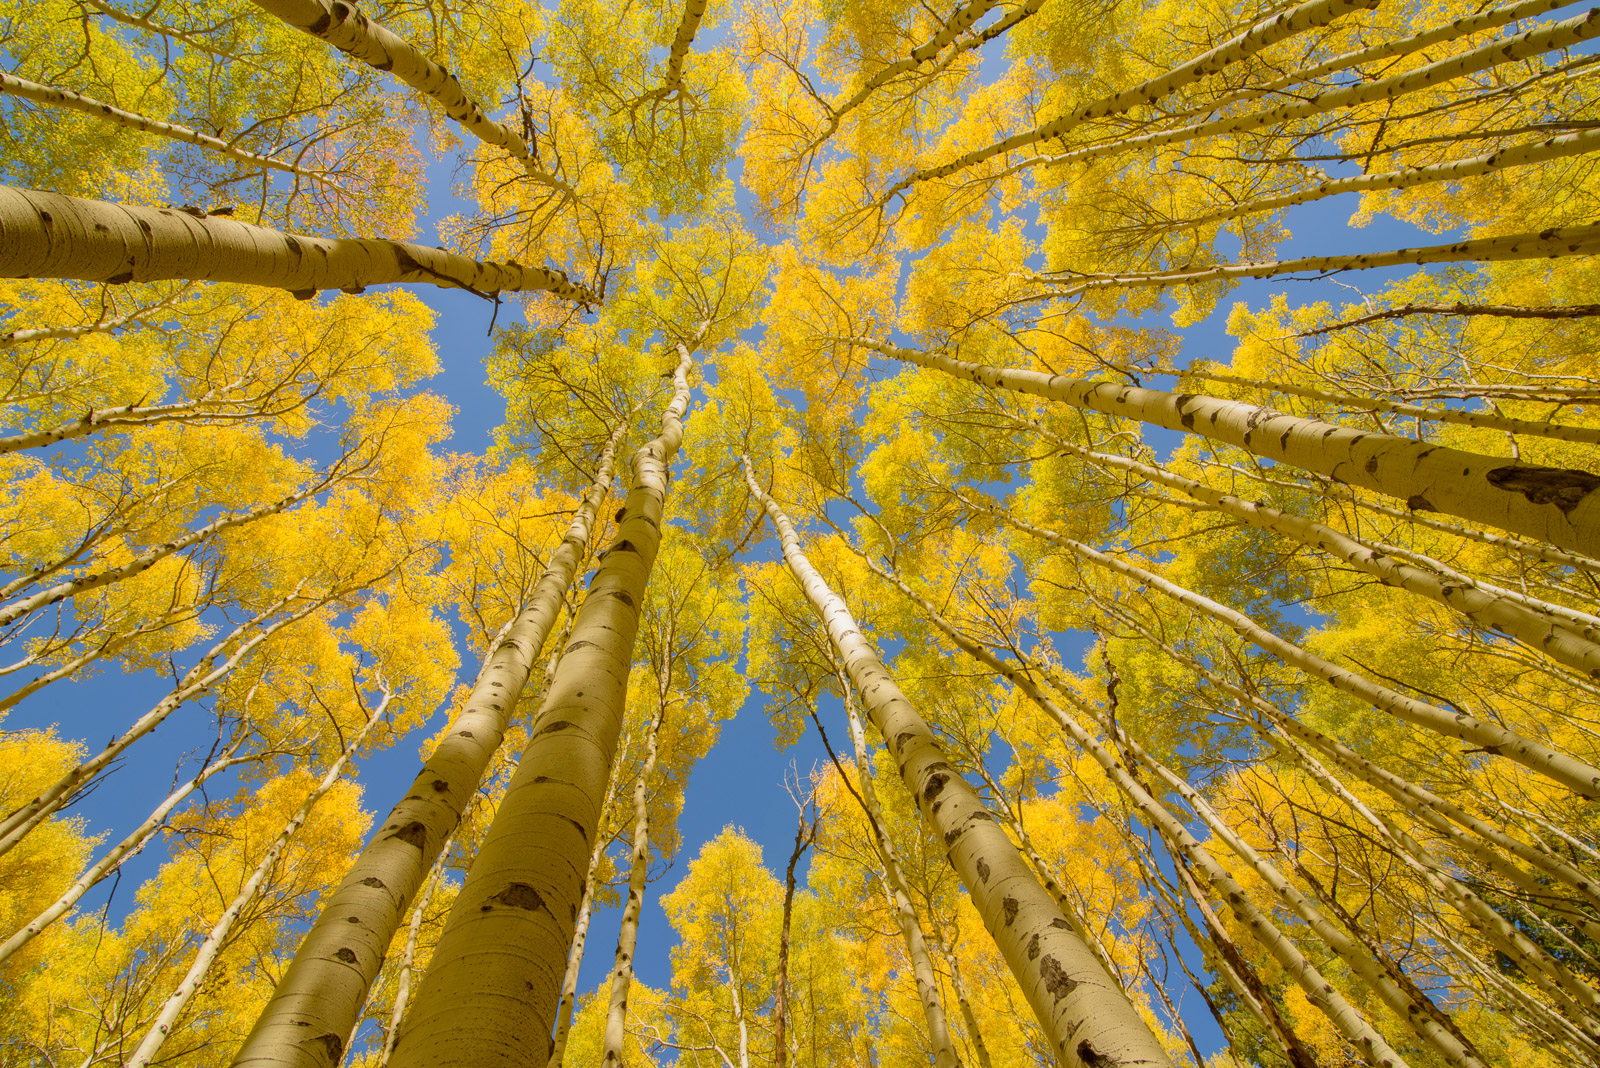 A canopy of autumn color captured in a glade of aspens in the San Juan Mountains of Colorado. Available Print Sizes: 12x18, 16x24...